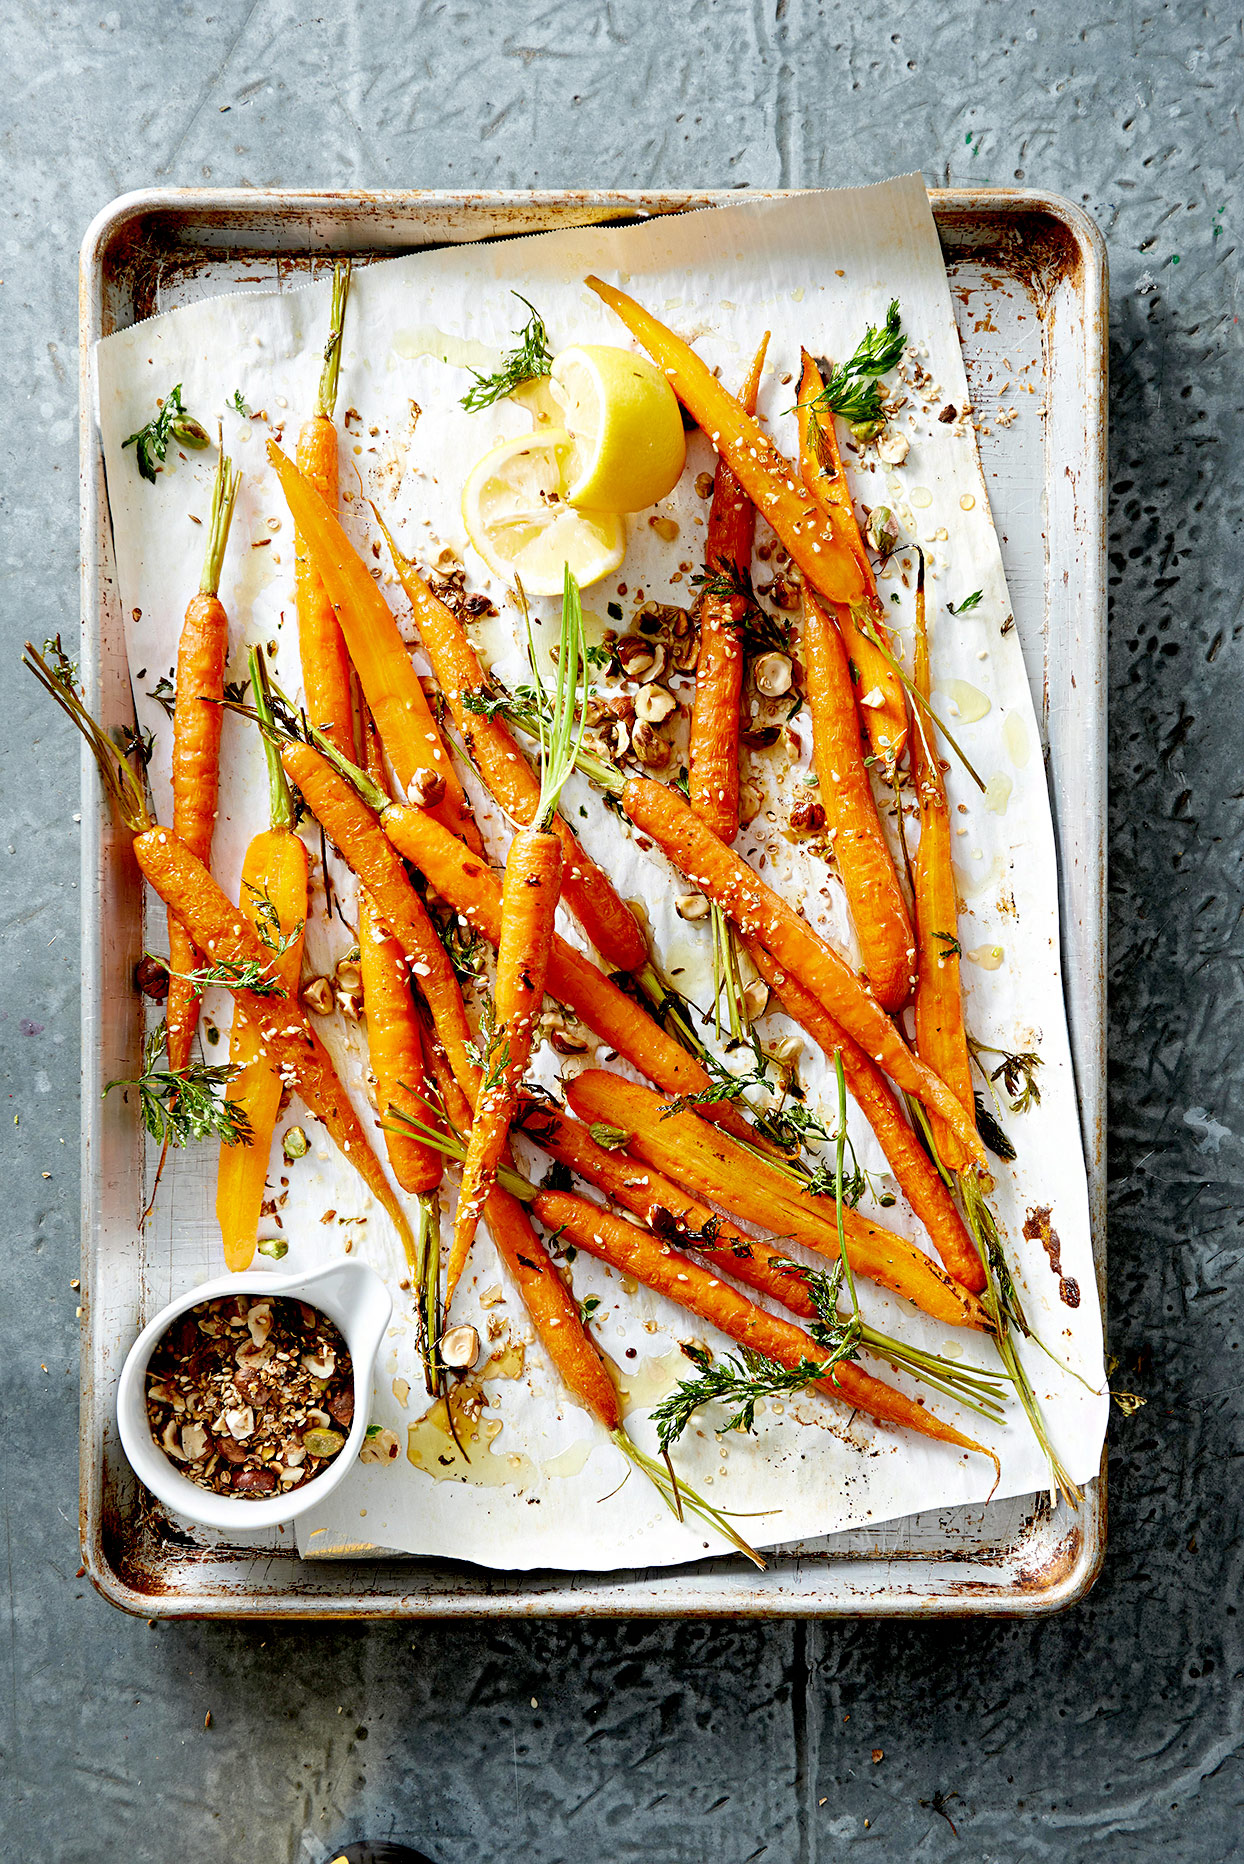 Spice and Honey-Roasted Carrots